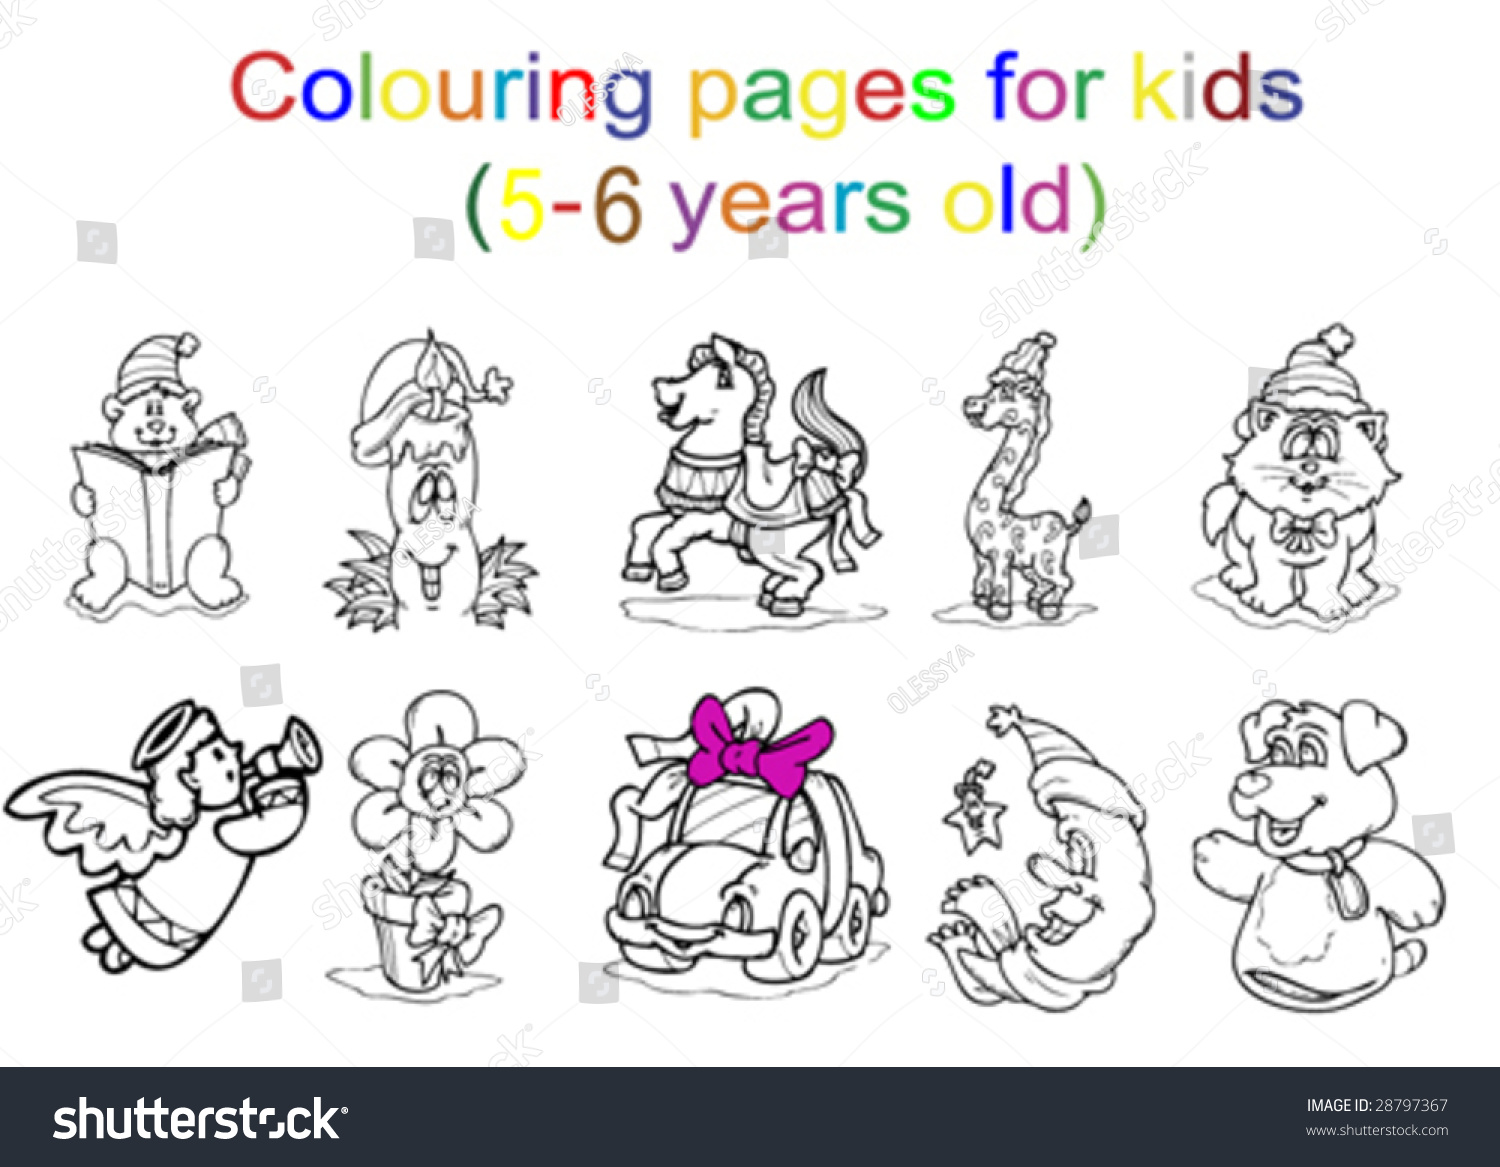 Colouring pages for kids 5 6 years old